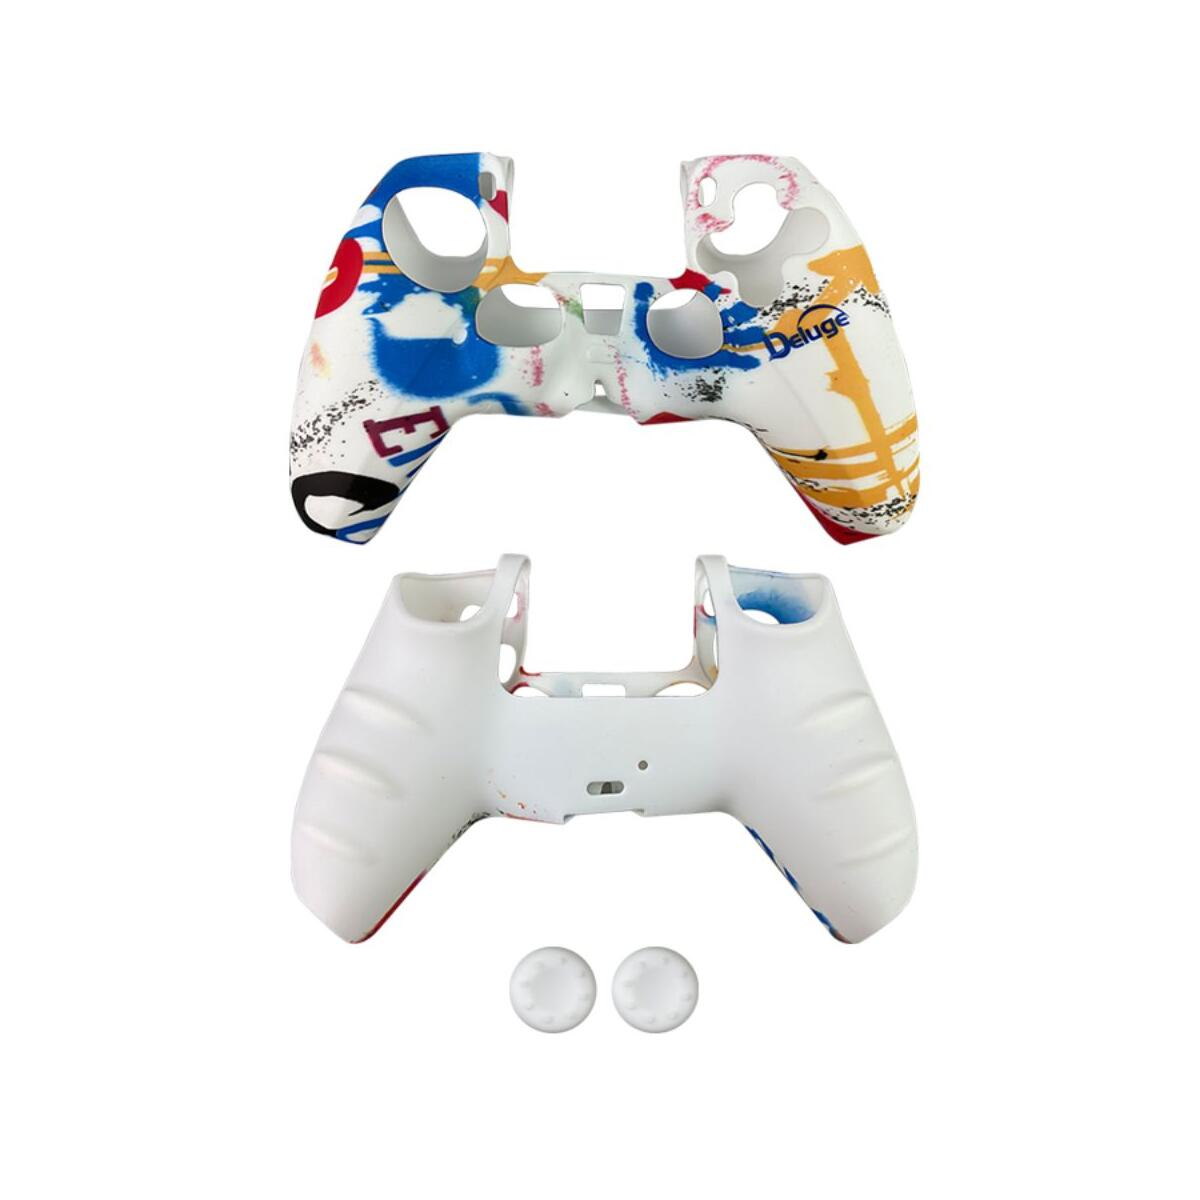 Silicone Gel Controller Cover Skin Protector for Playstation PS5, Protection Case Soft Gel Skin Cover for PS5 Controller Gamepad